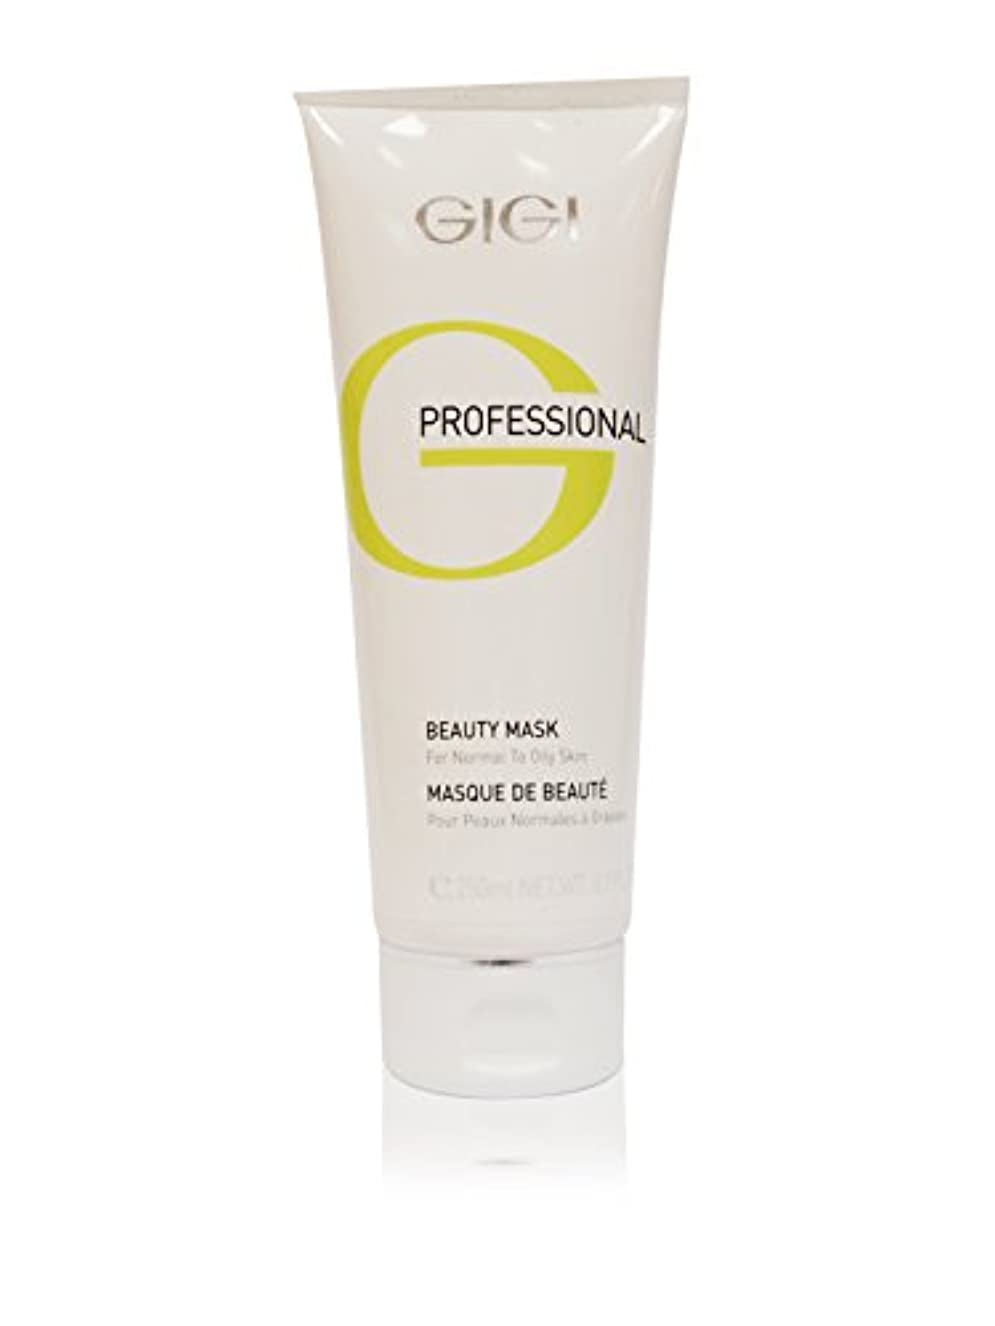 議会欠員慈善GIGI Beauty Mask for Normal to Oily Skin 250ml 8.4fl.oz